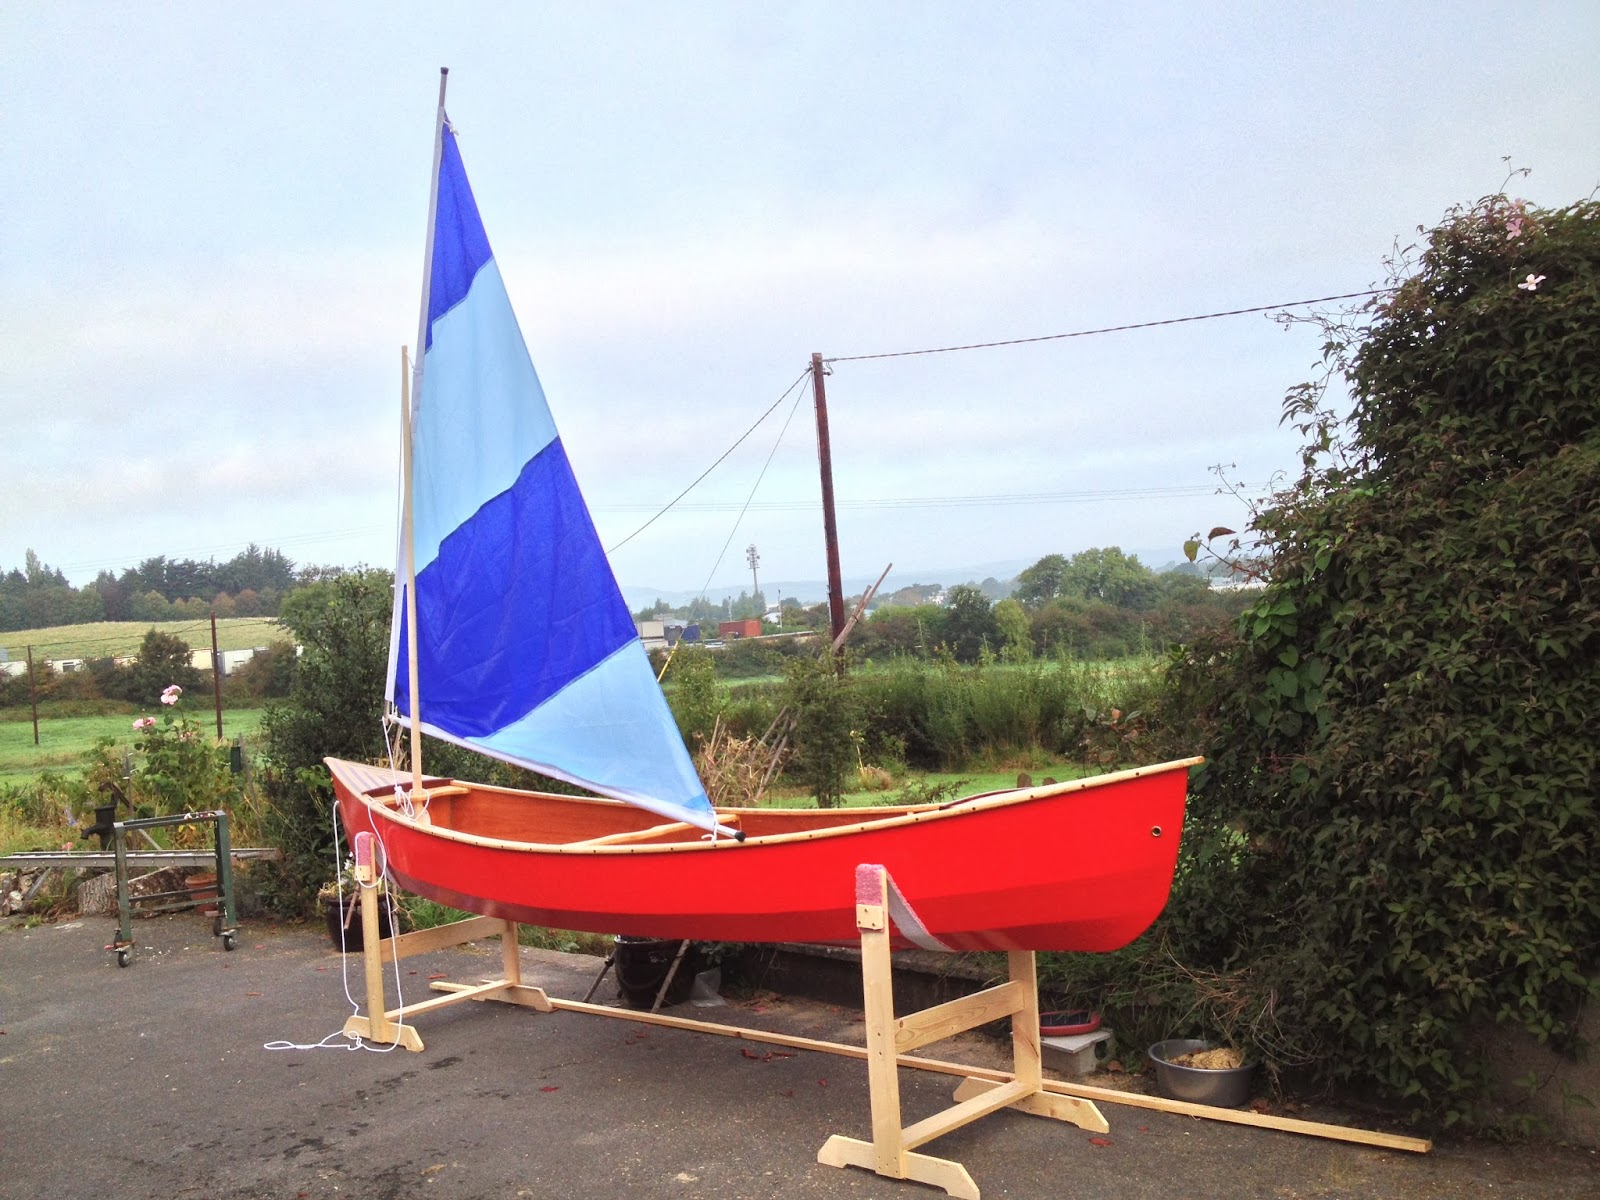 Anet: Wooden boat building limerick